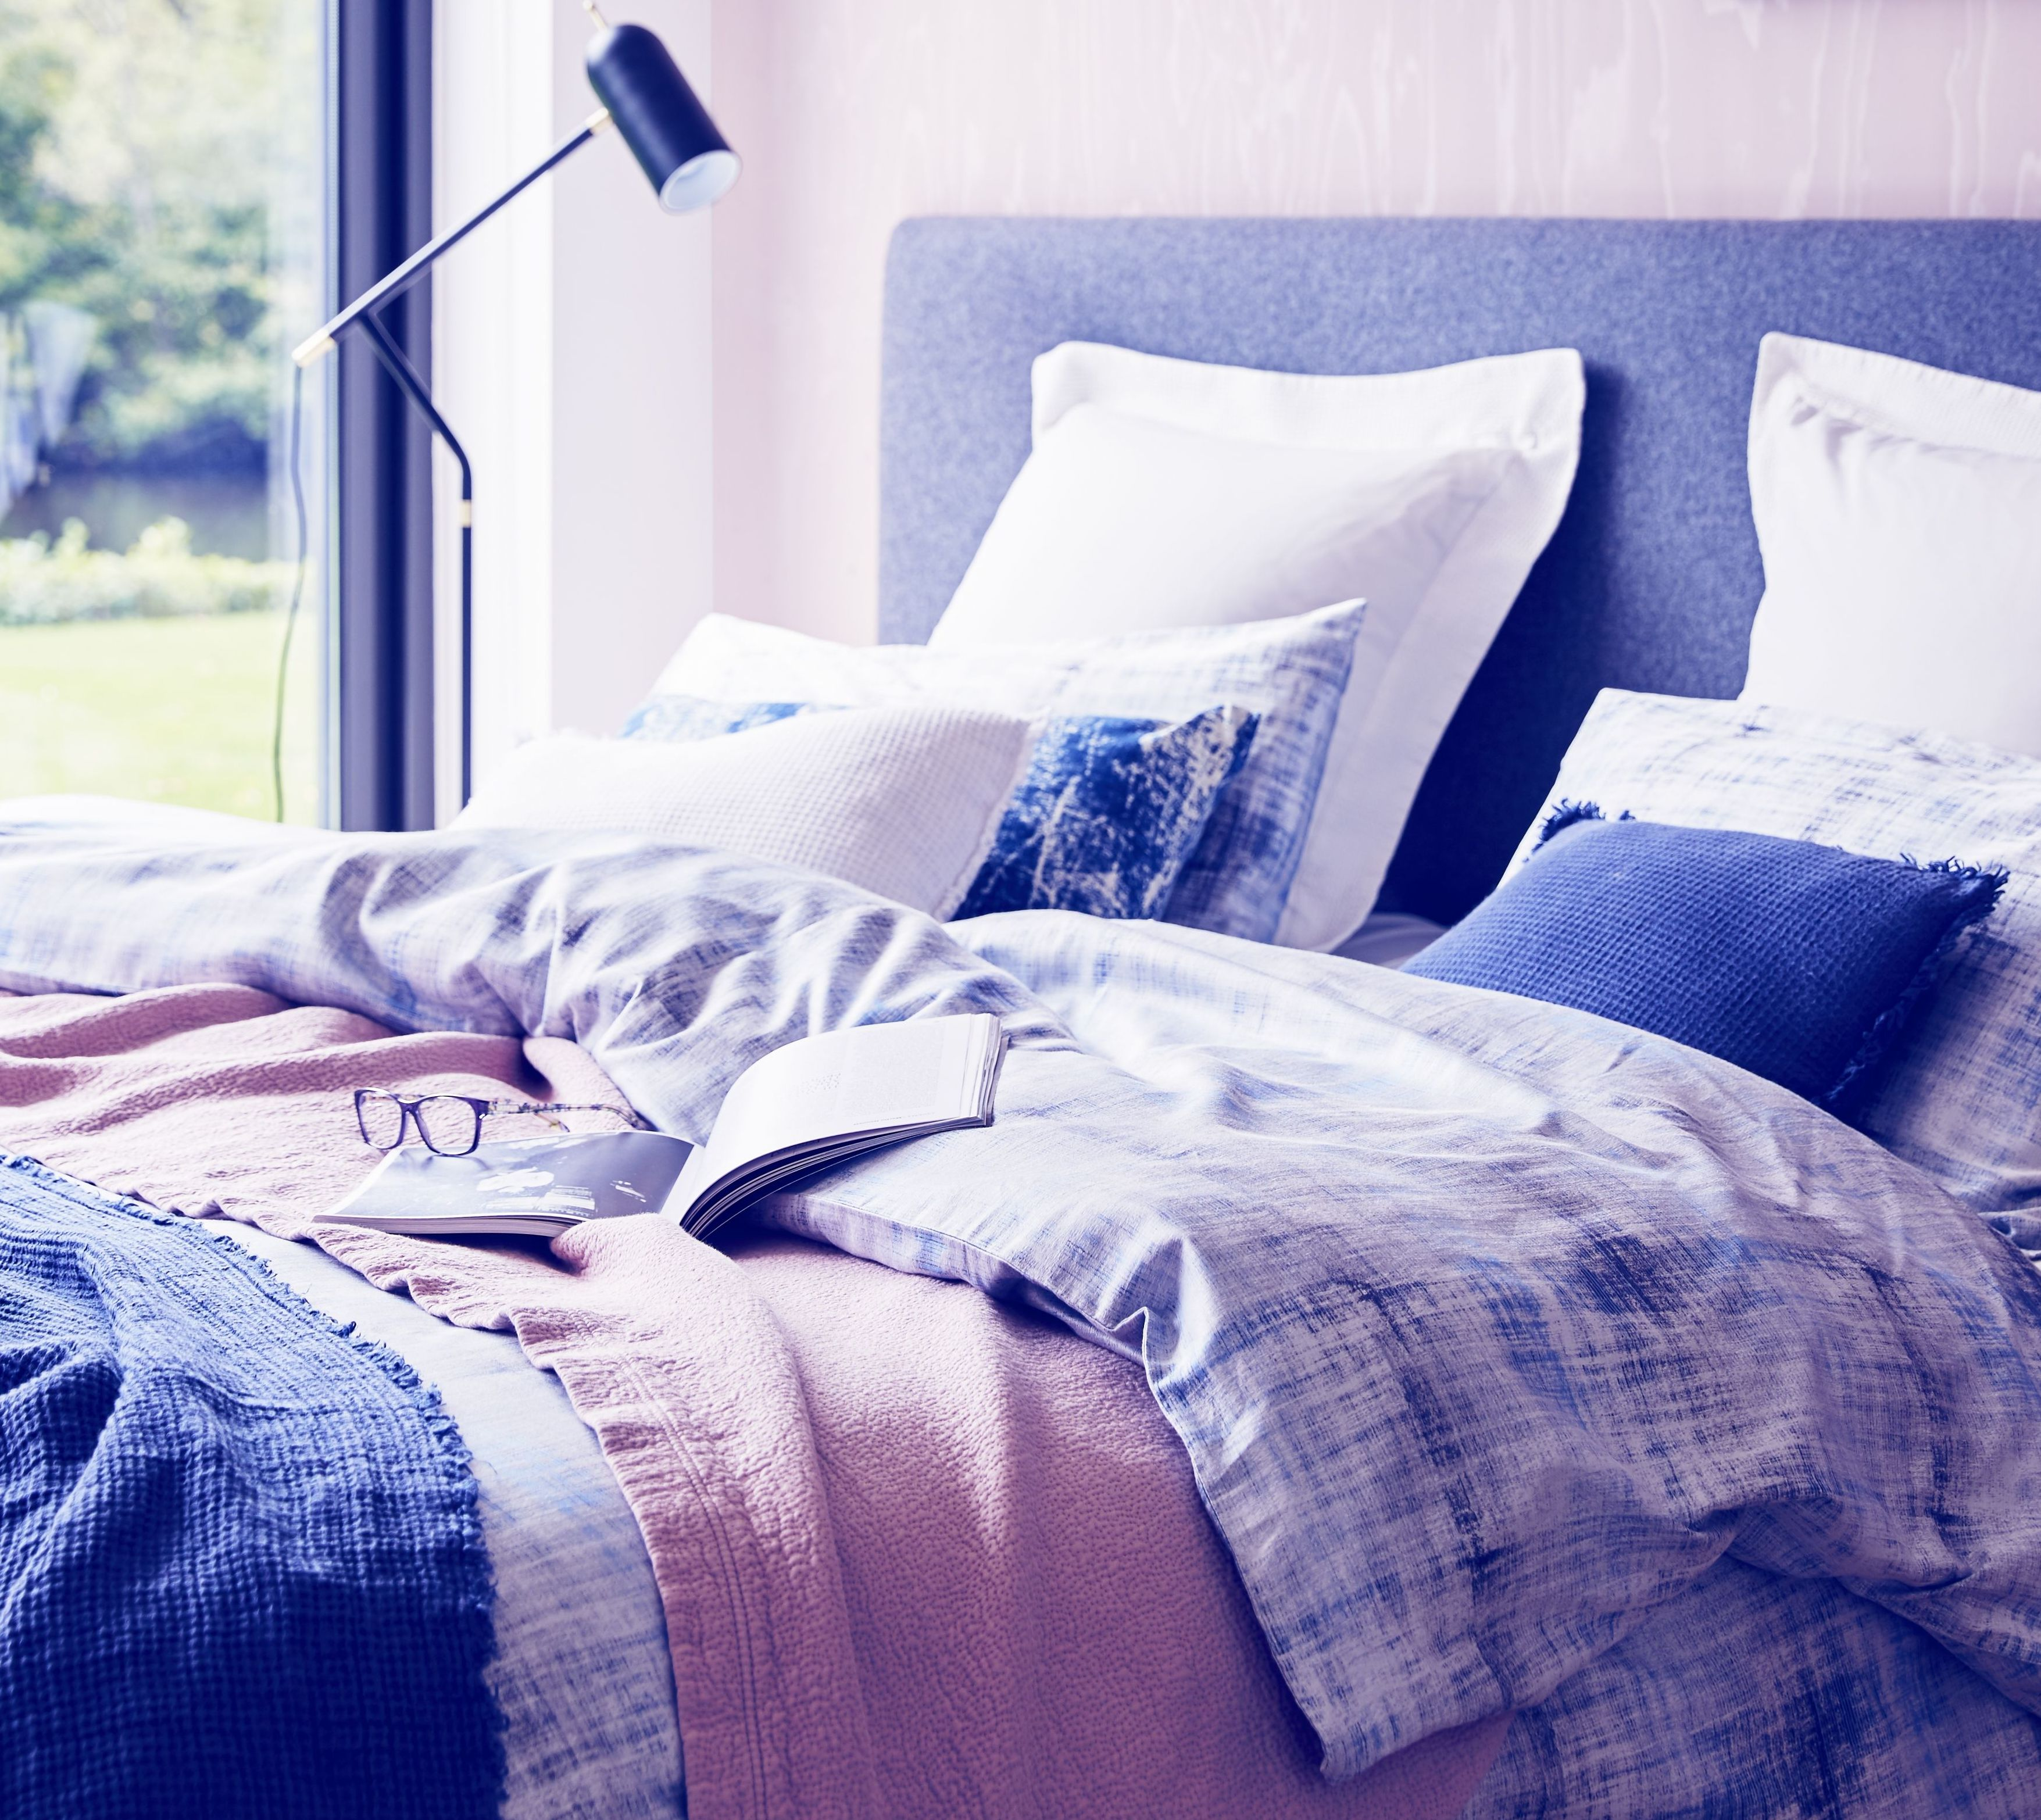 Why you should choose linen bedding all year round